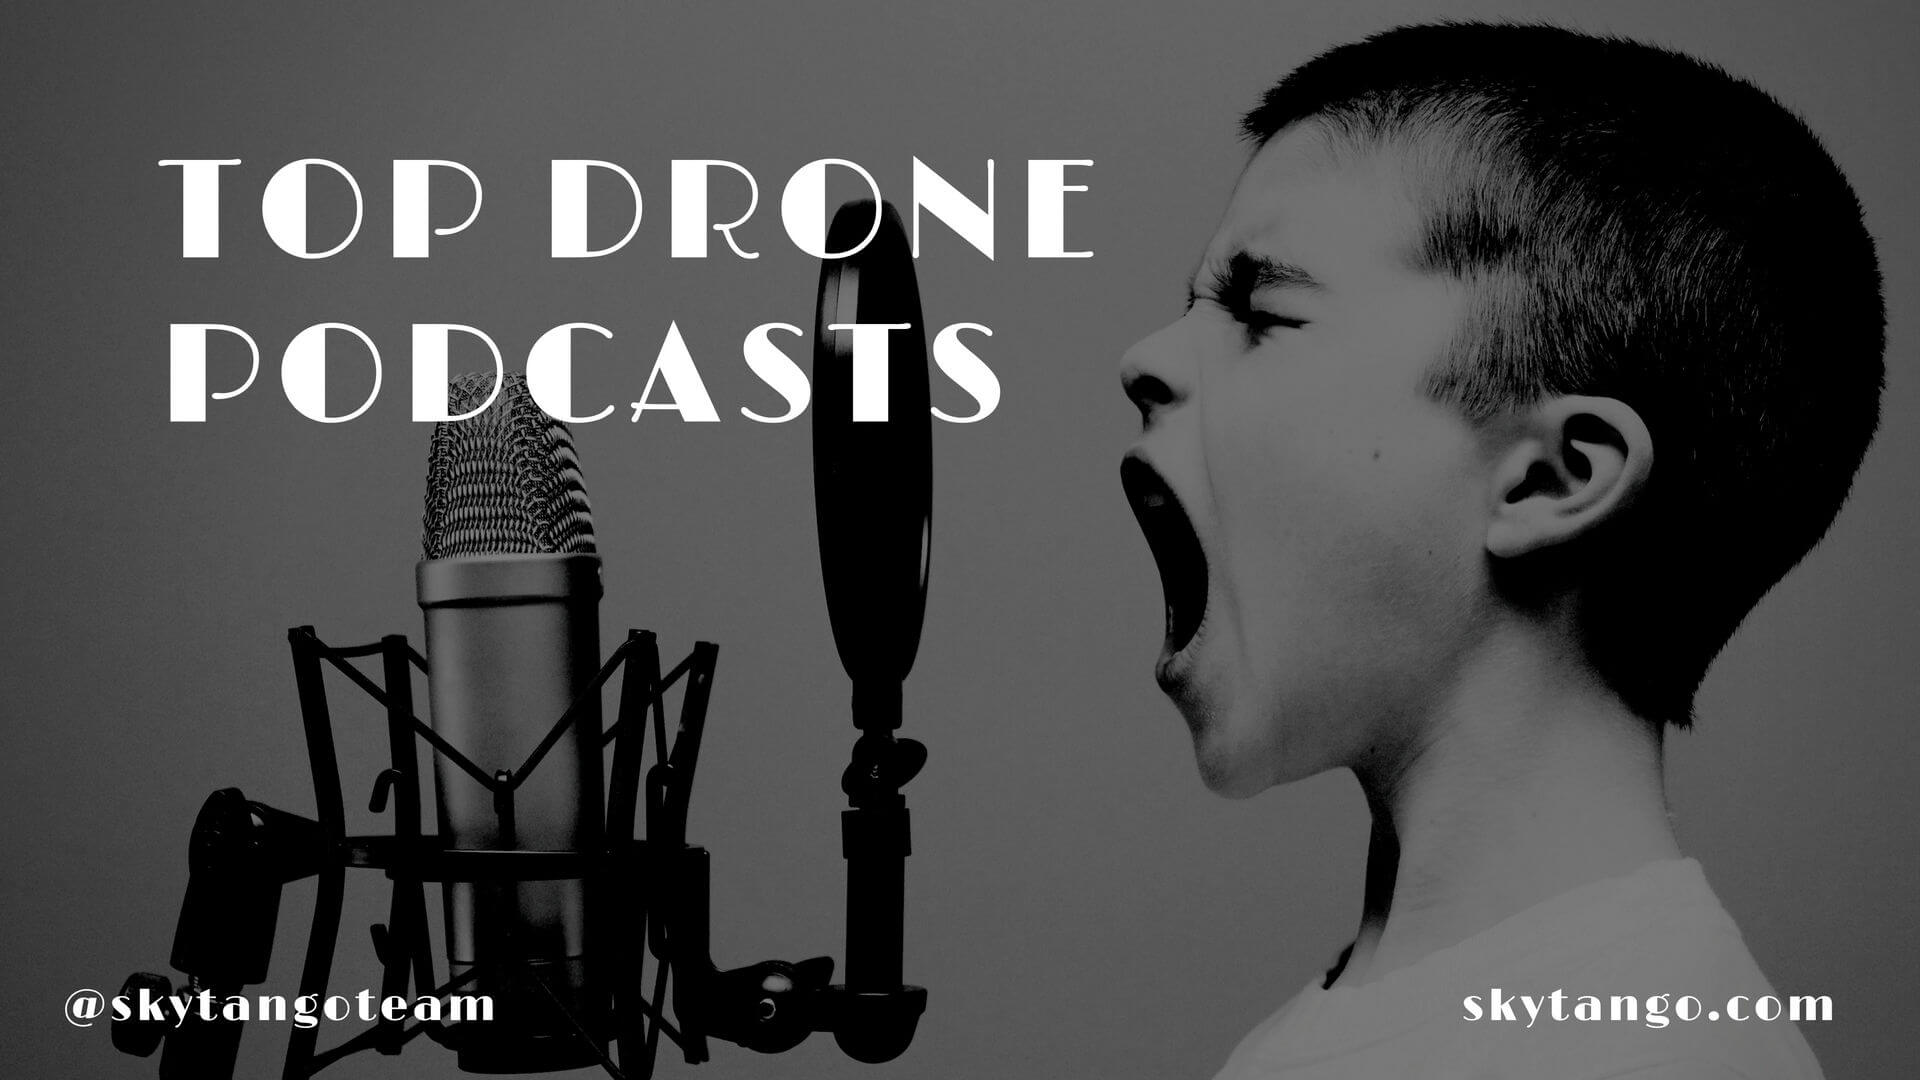 Top Drone Podcasts